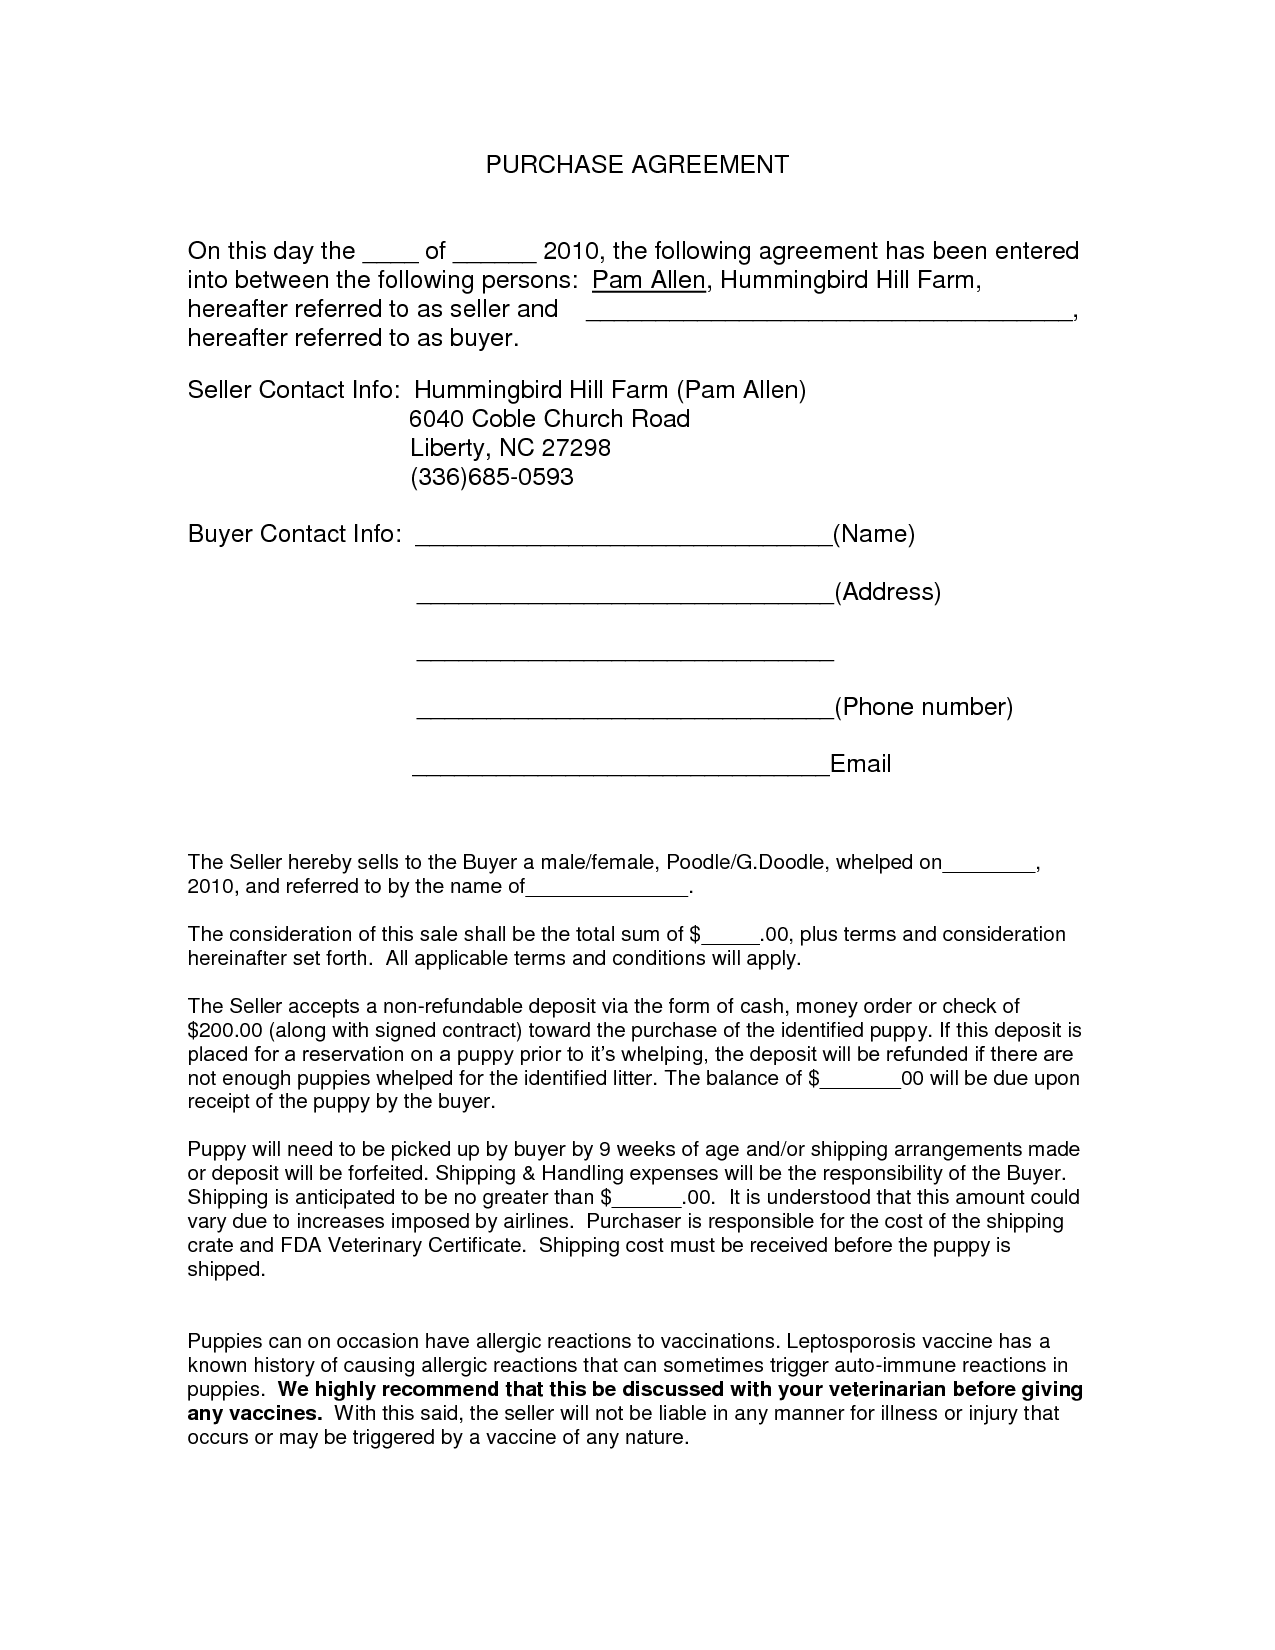 Elegant Auto Purchase Agreement Form   DOC By Nyy13910   Purchase Contract Template Intended For Auto Purchase Agreement